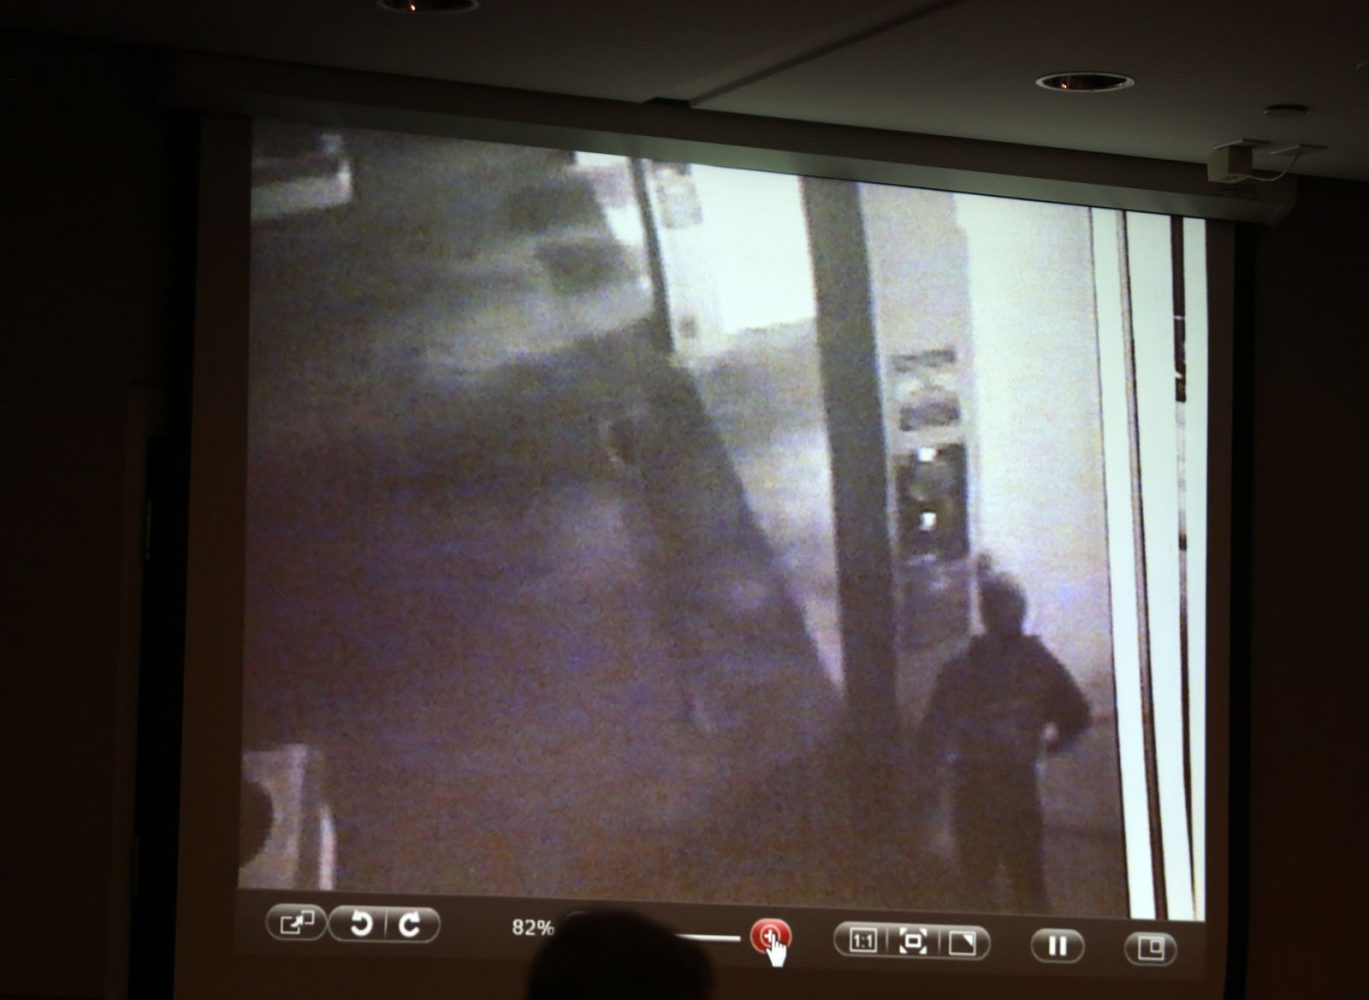 A screen grab from a surveillance camera at Scrubs Car Wash allegedly of Pedro Bravo is shown to the jury during Bravo's murder trial in courtroom 1B of the Alachua County Criminal Justice Center Friday, August 8, 2014.  Bravo is accused of killing University of Florida student Christian Aguilar.  (Doug Finger/The Gainesville Sun/Pool)